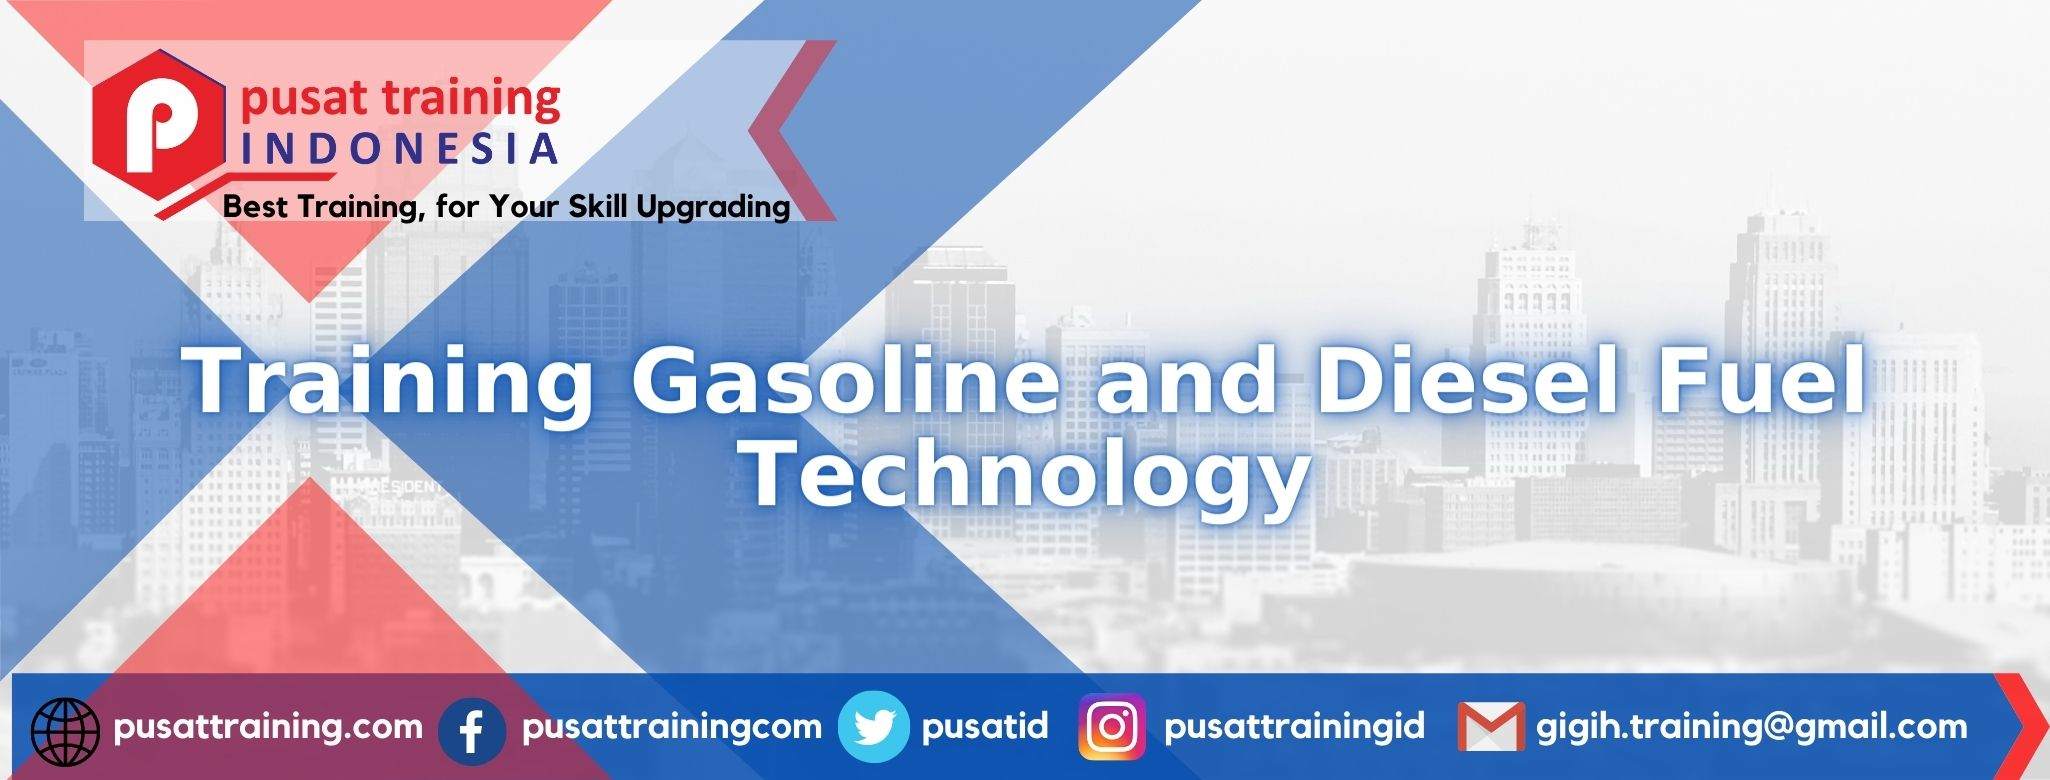 Training-Gasoline-and-Diesel-Fuel-Technology